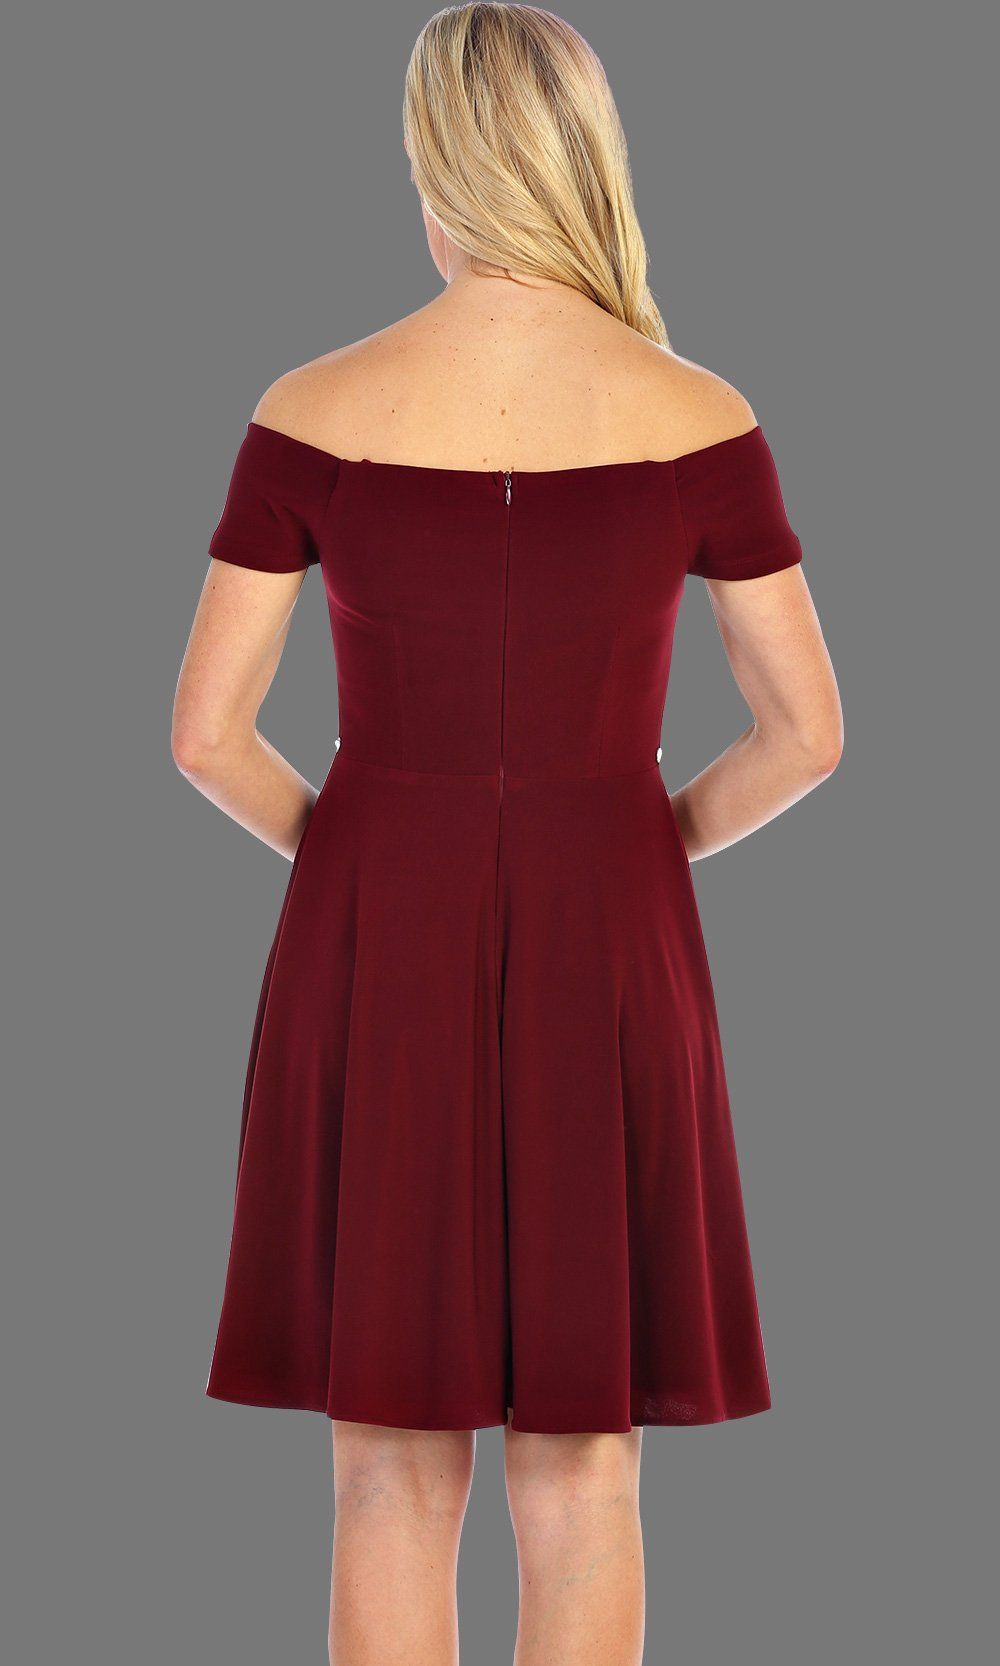 Short Burgundy Simple Off Shoulder Dress With Jewel Belt